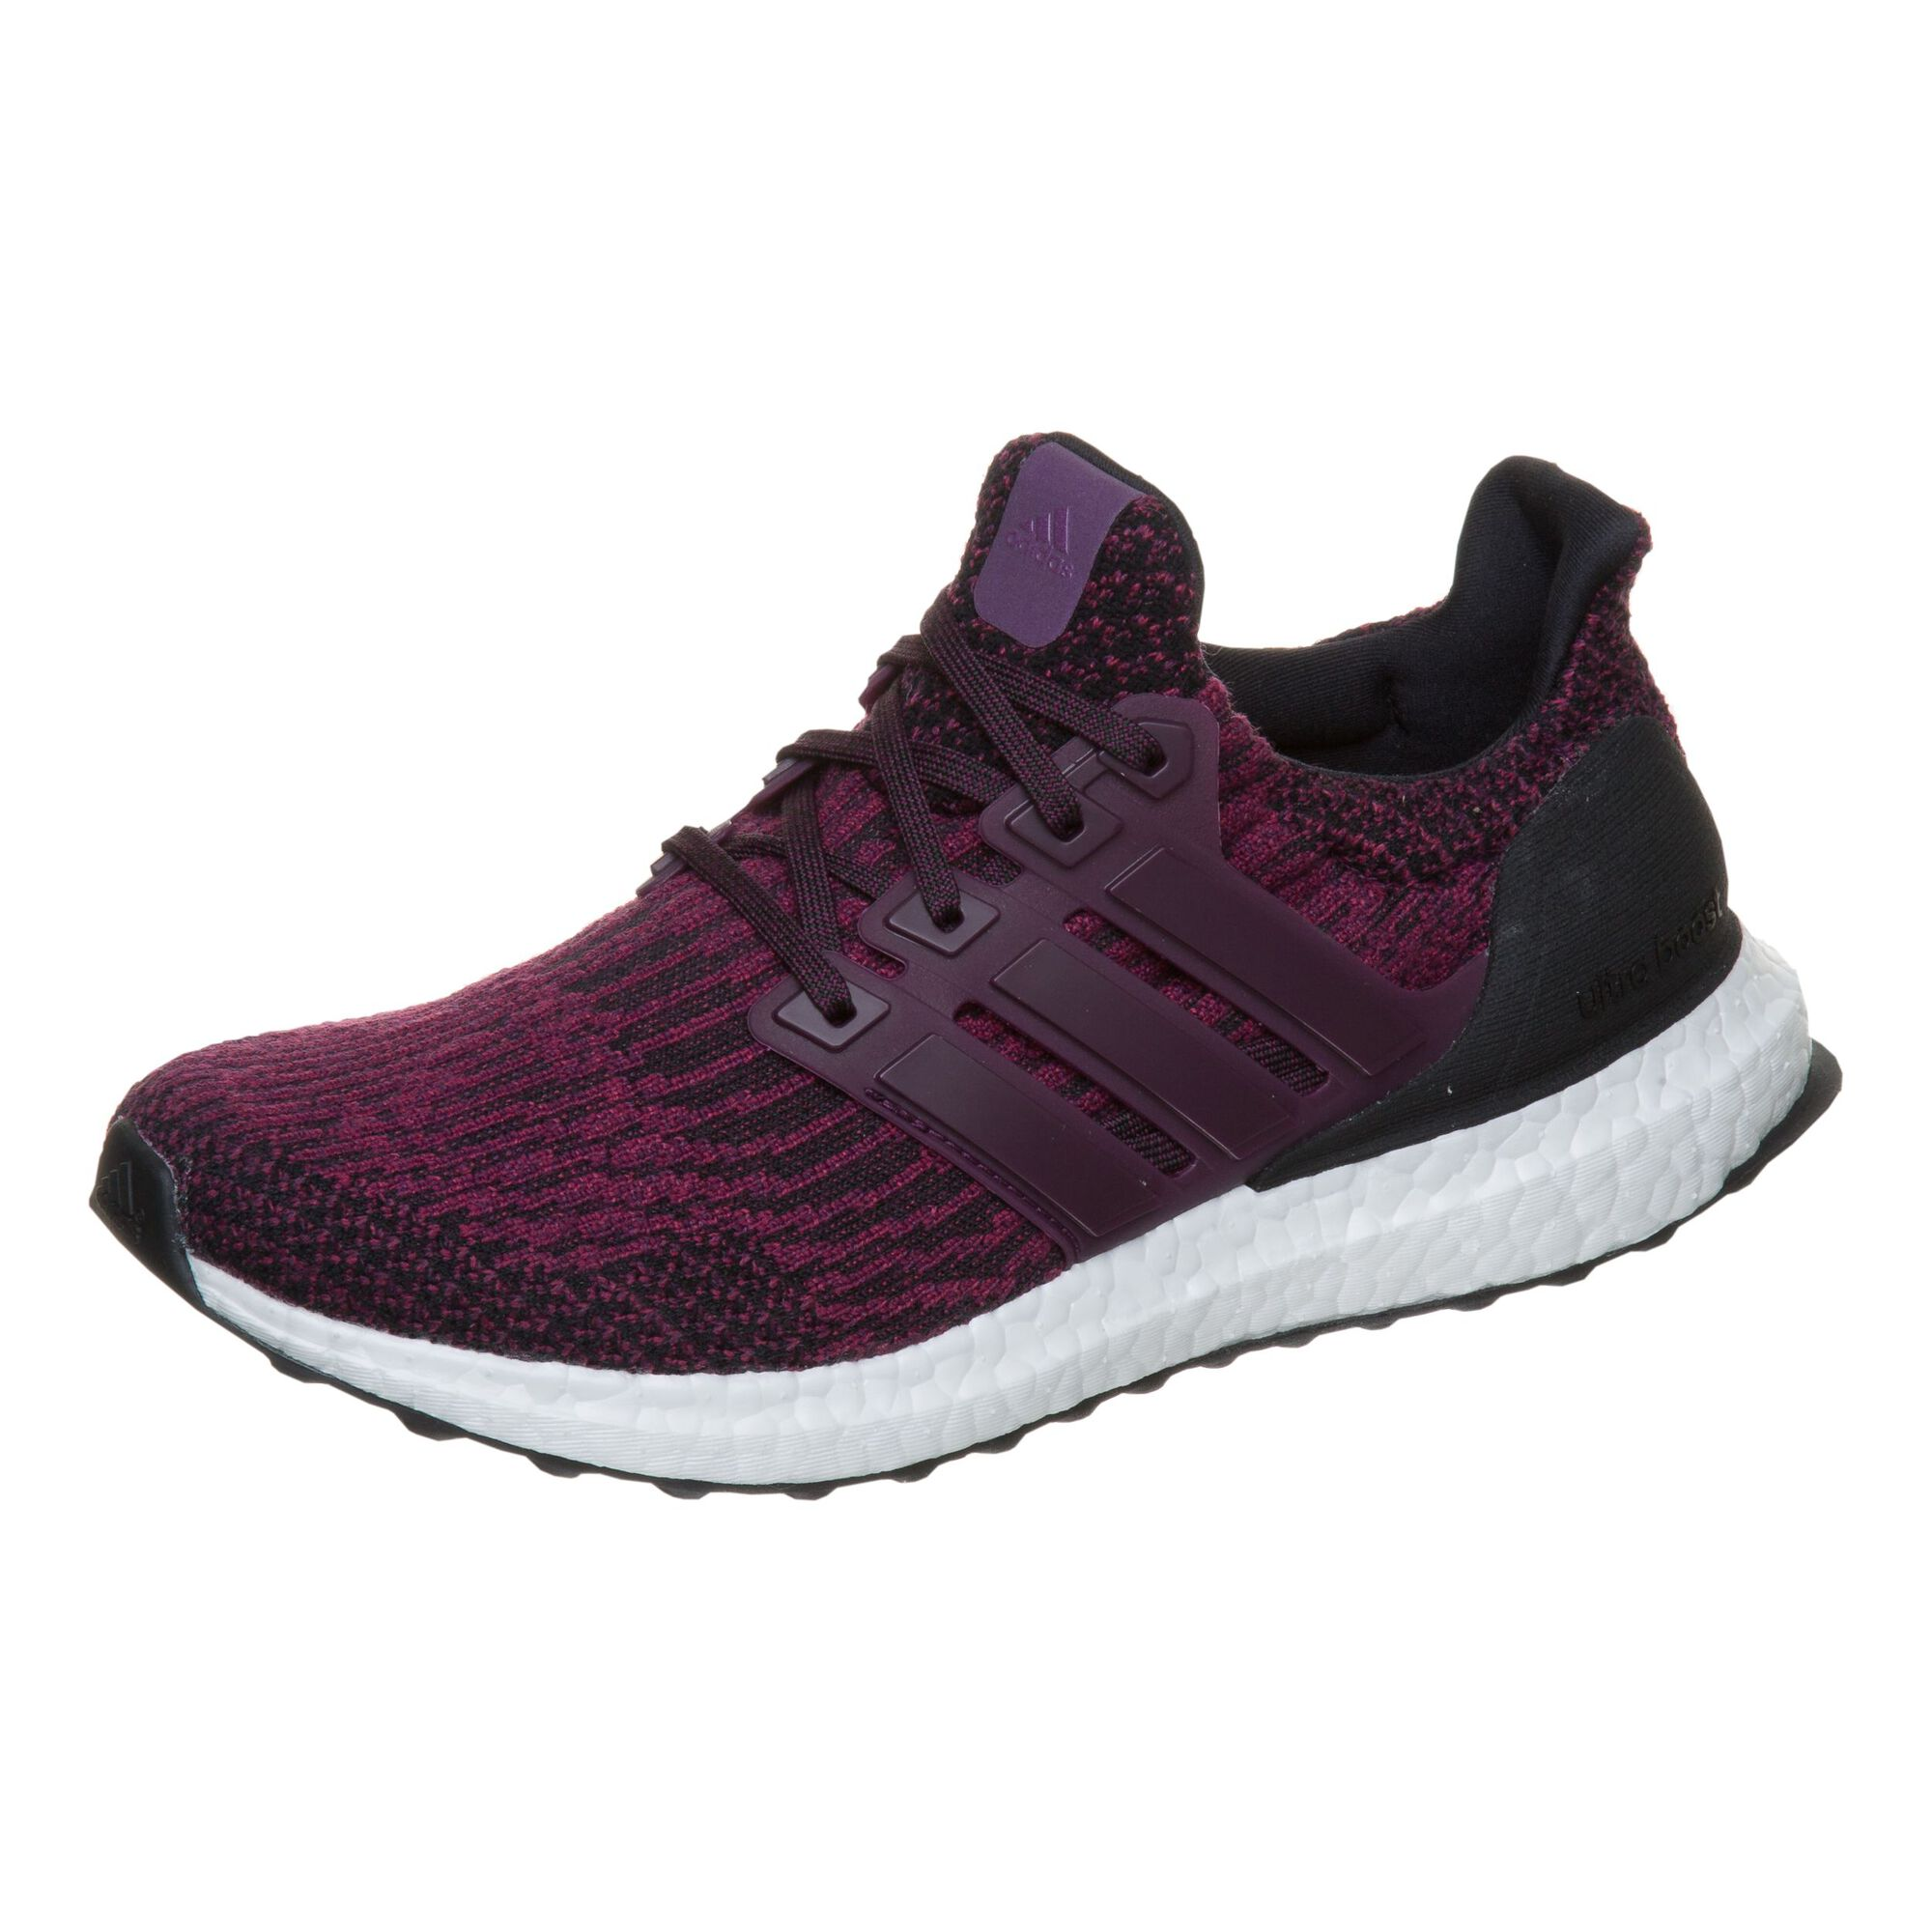 f49f41fd29967 buy adidas Ultra Boost Neutral Running Shoe Women - Violet